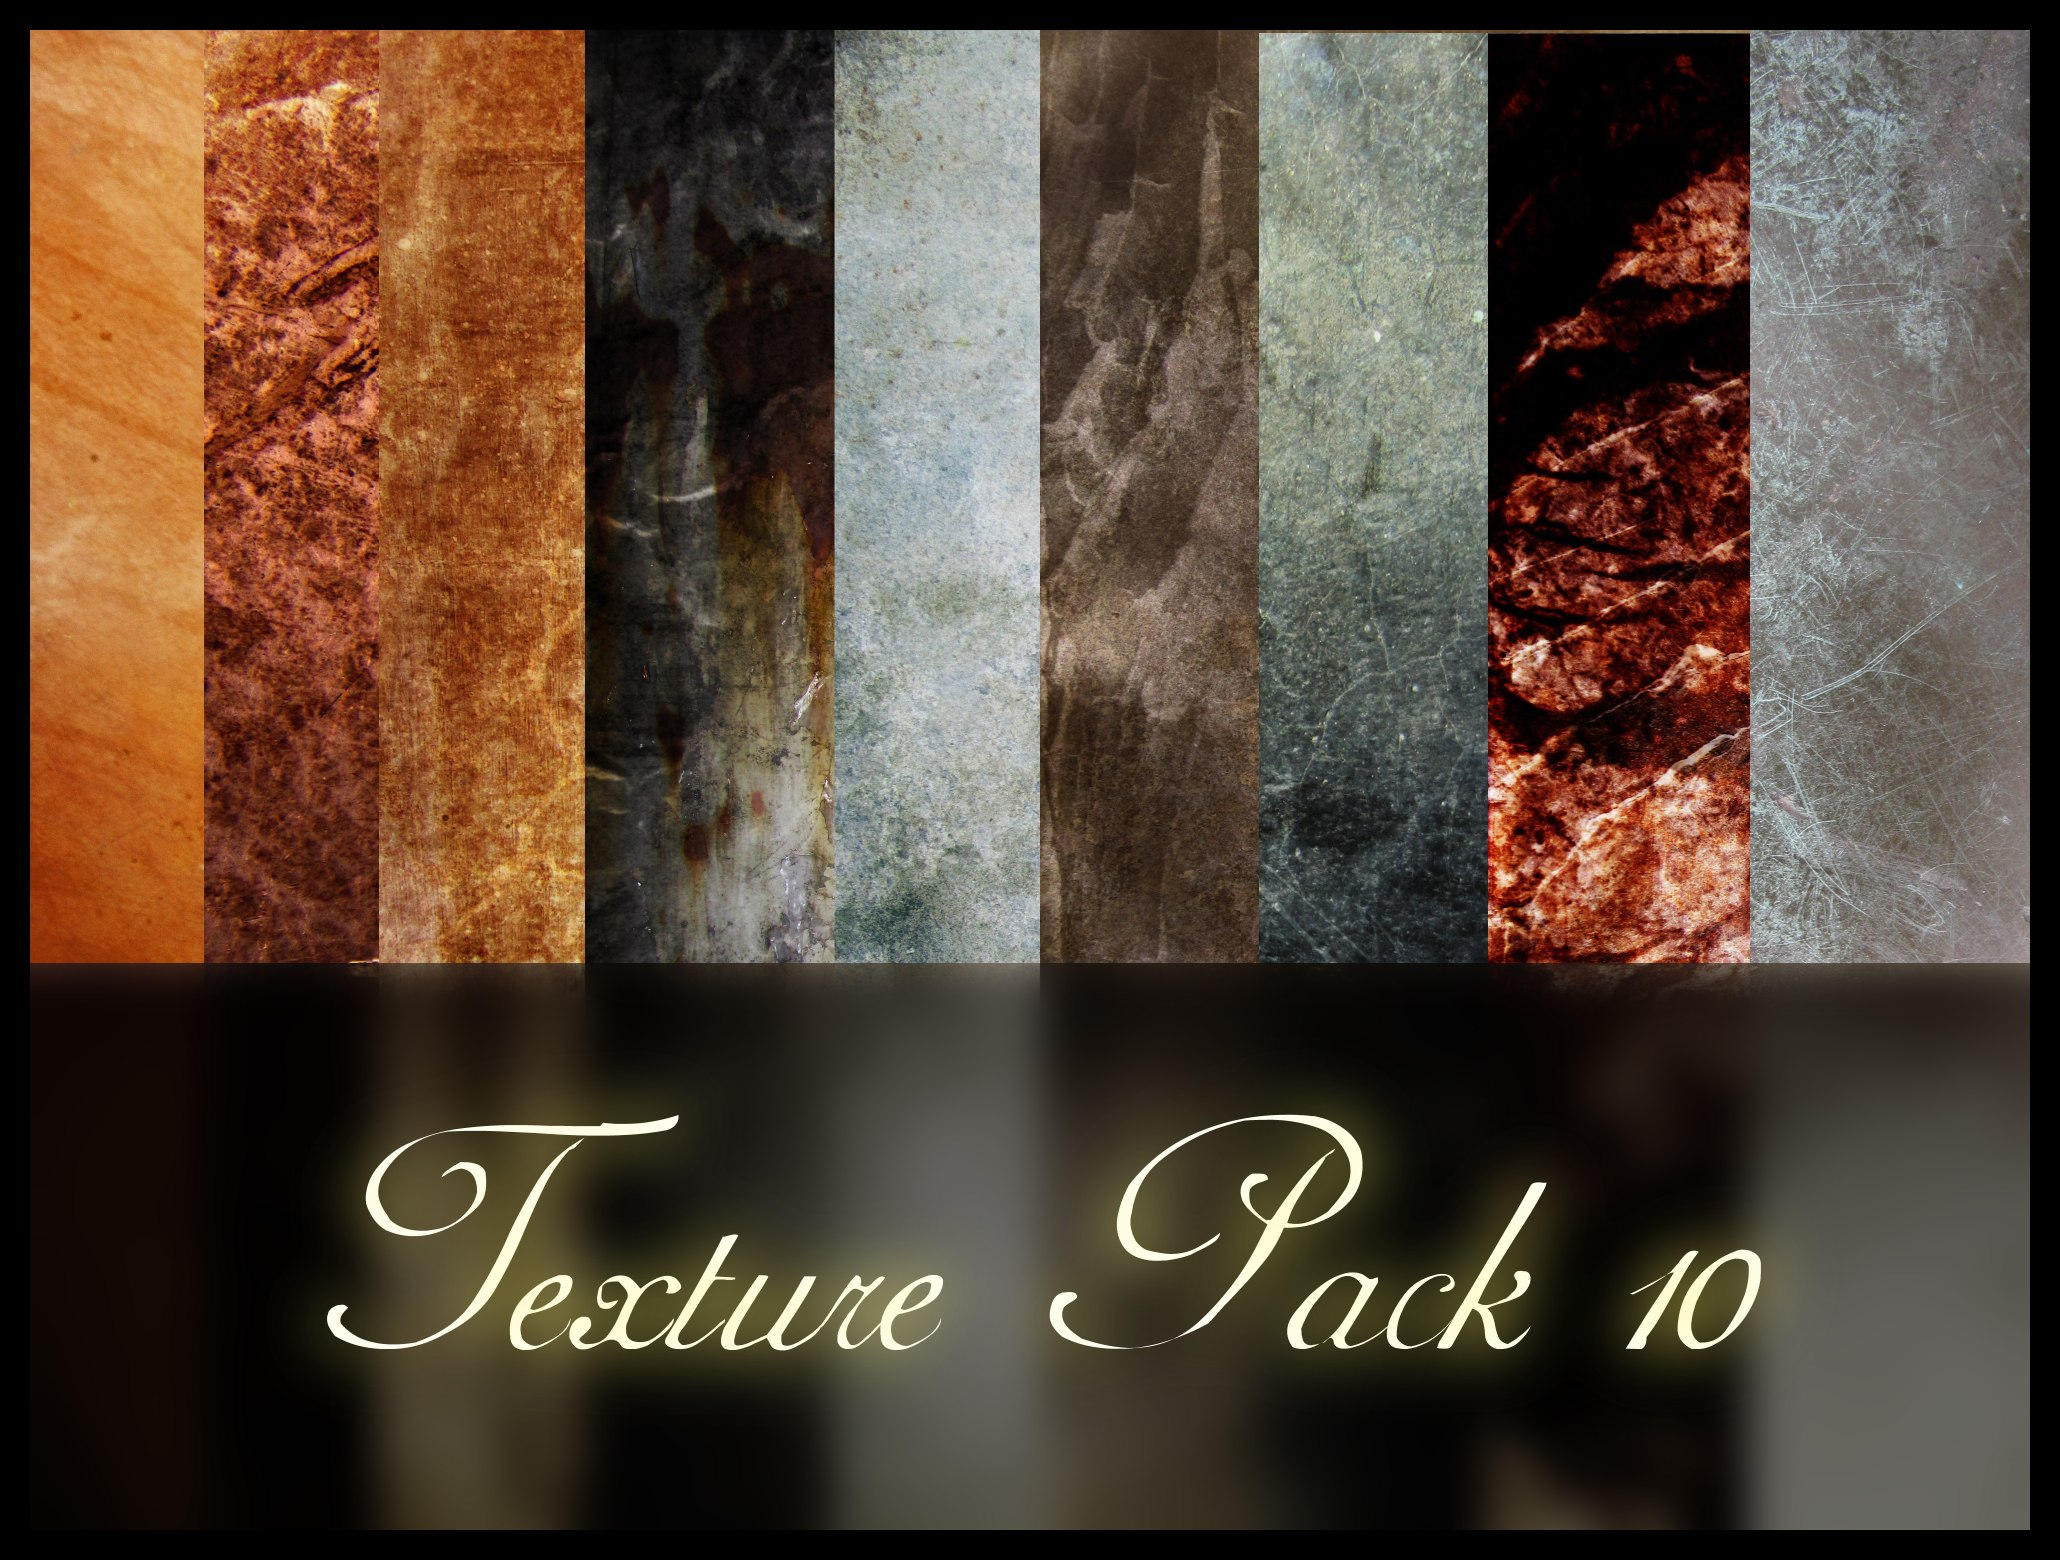 texture pack 10 by Sirius-sdz